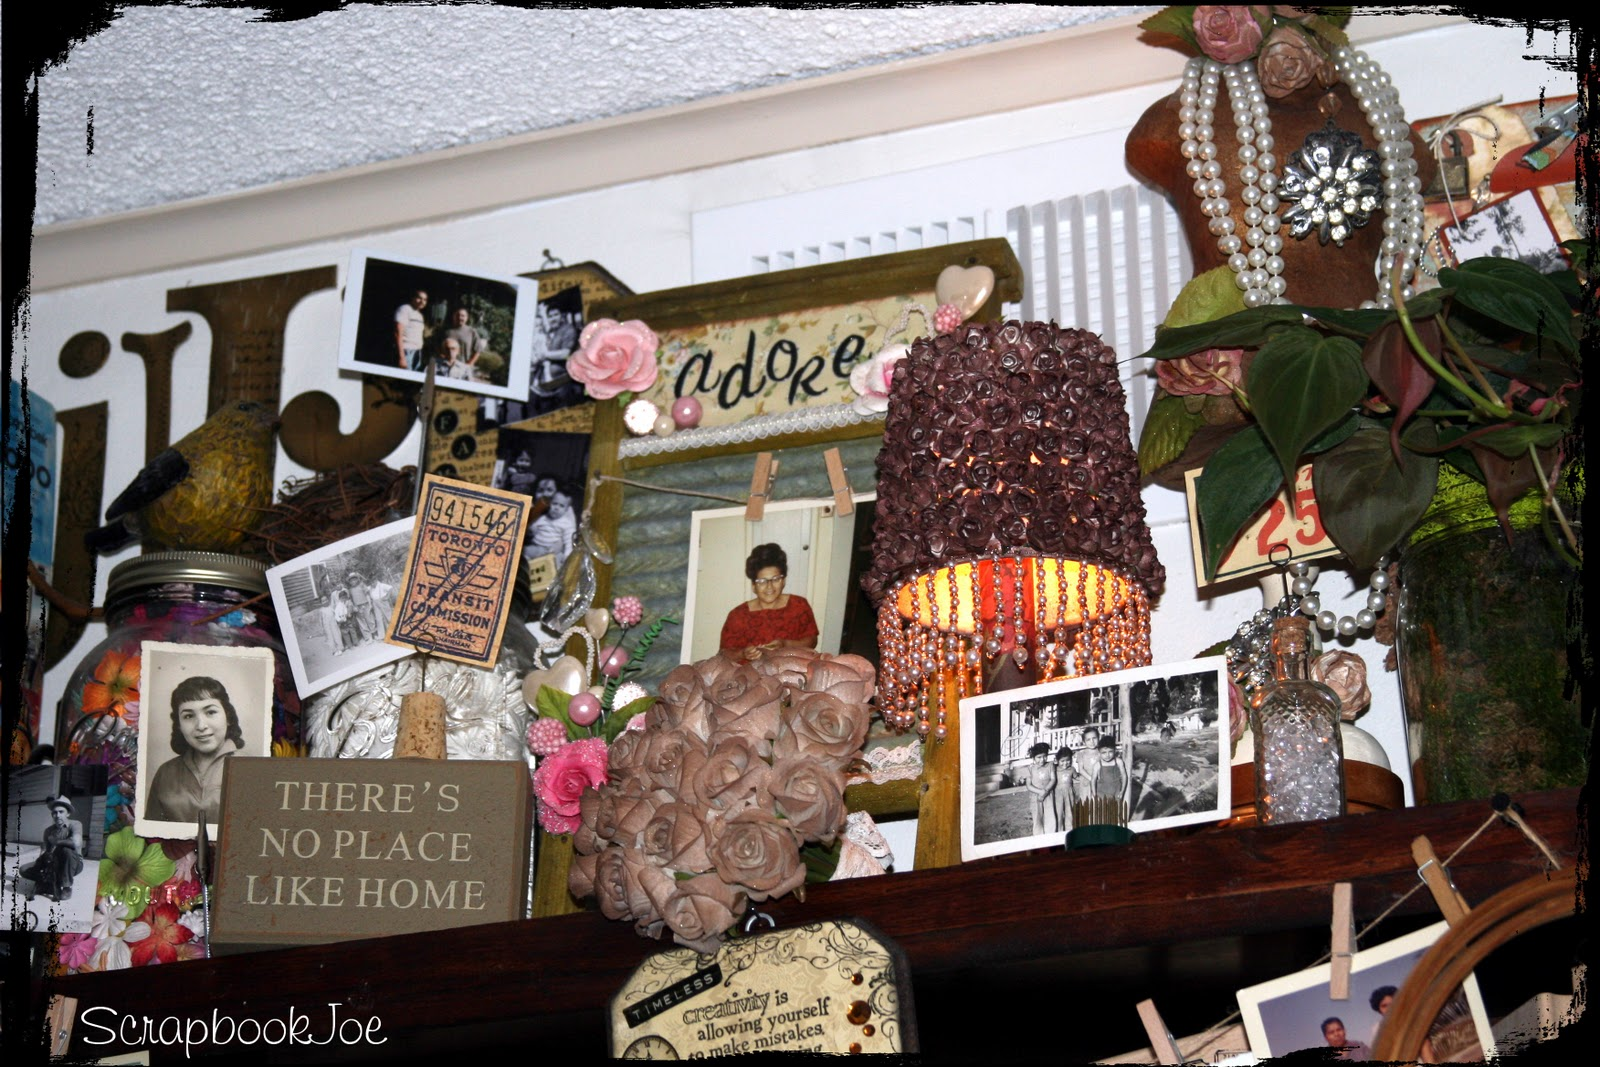 SCRAPBOOKJOE: New photos of my mini scrap studio